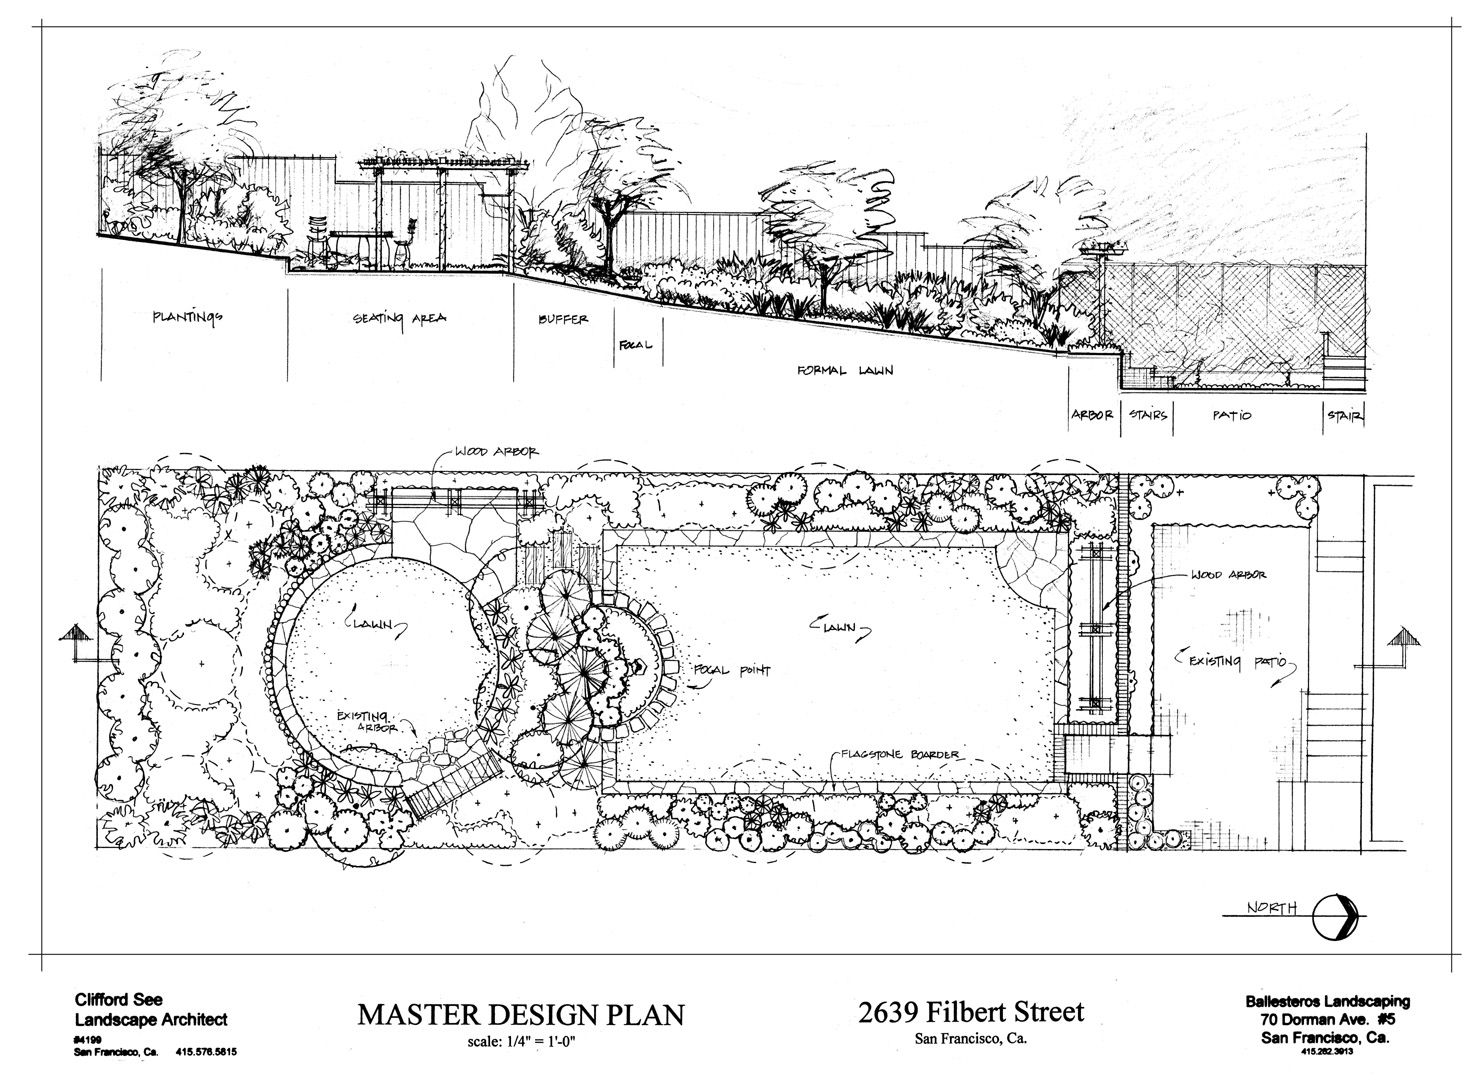 formal terrraced garden design with a rectangular and a circular lawn well connected by a